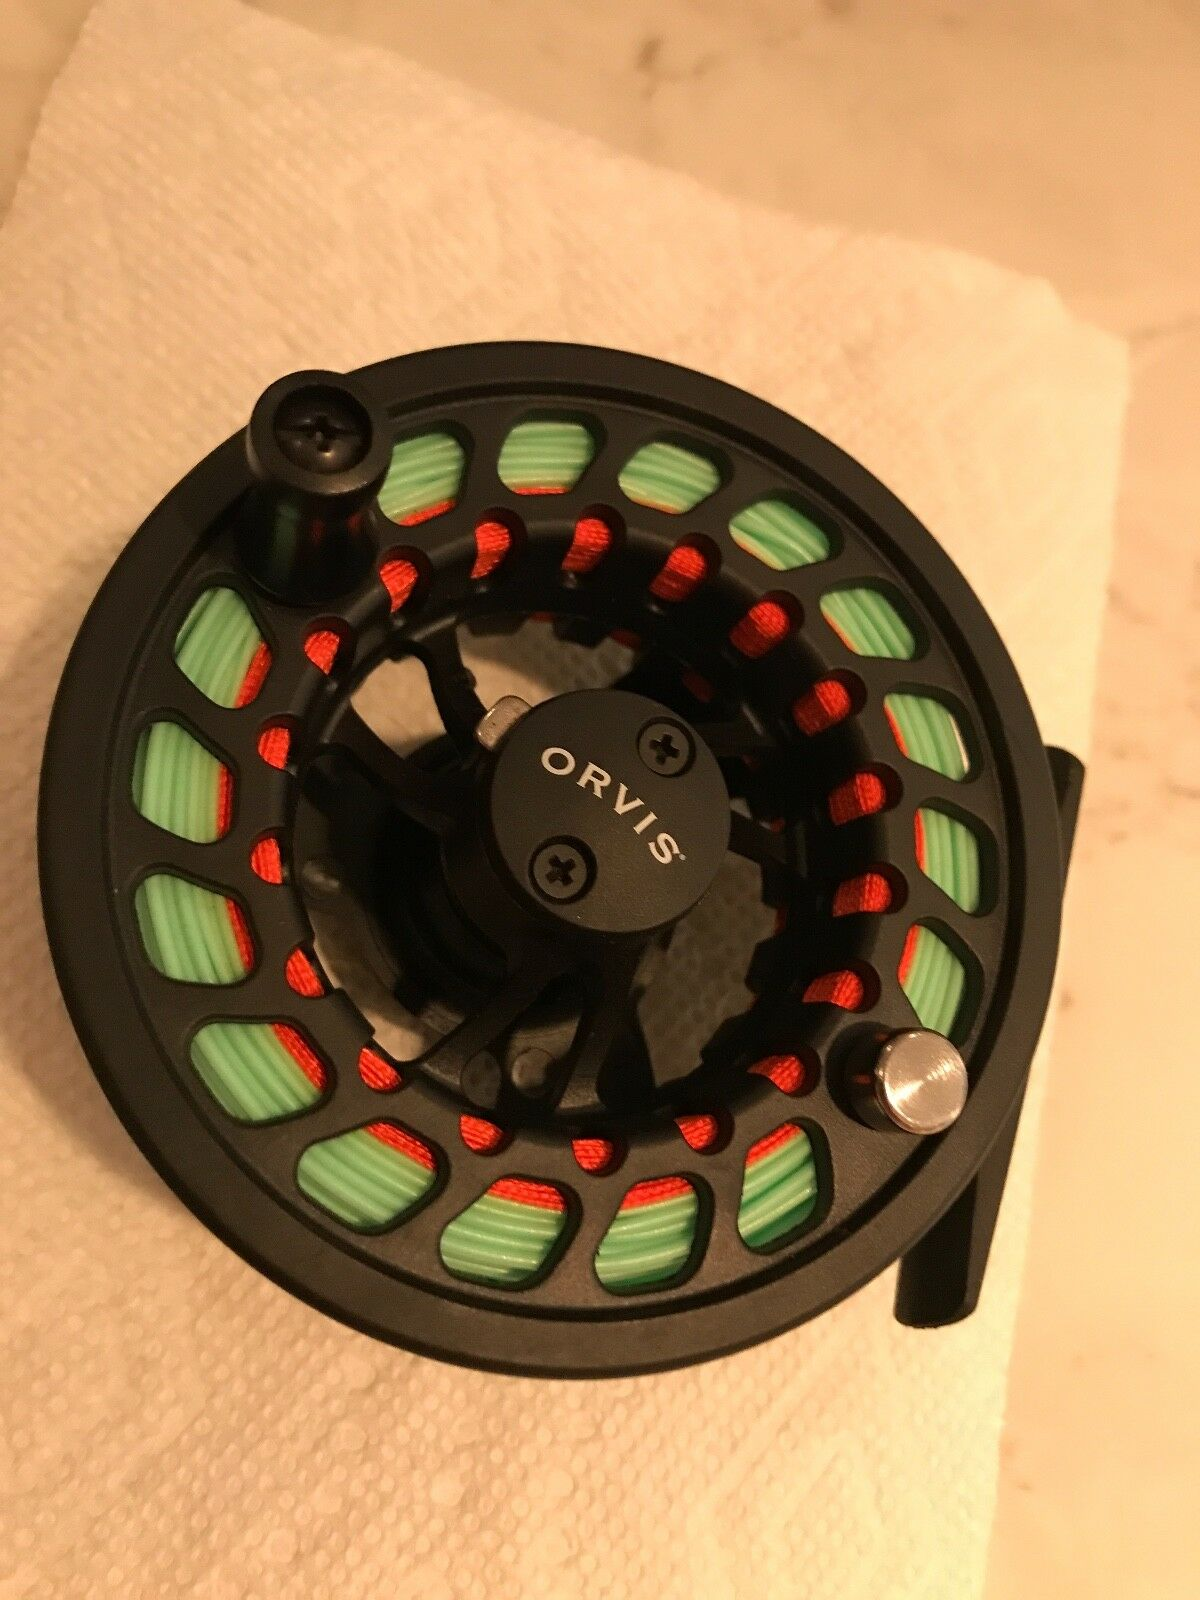 Orvis Encounter II Fly Reel with Spool